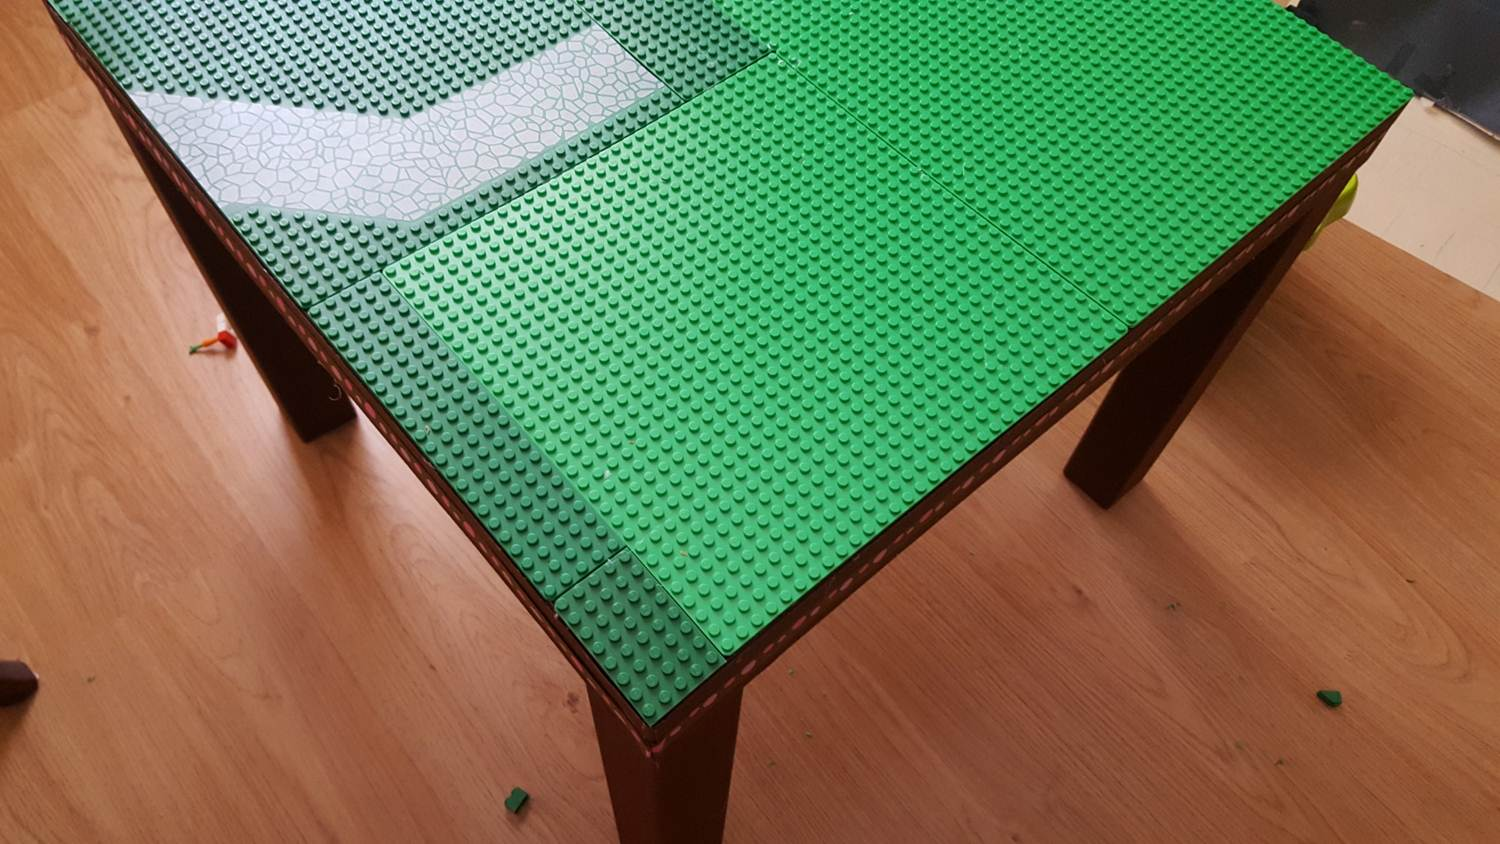 Ikea hack lego table keeping it real for Table lego ikea